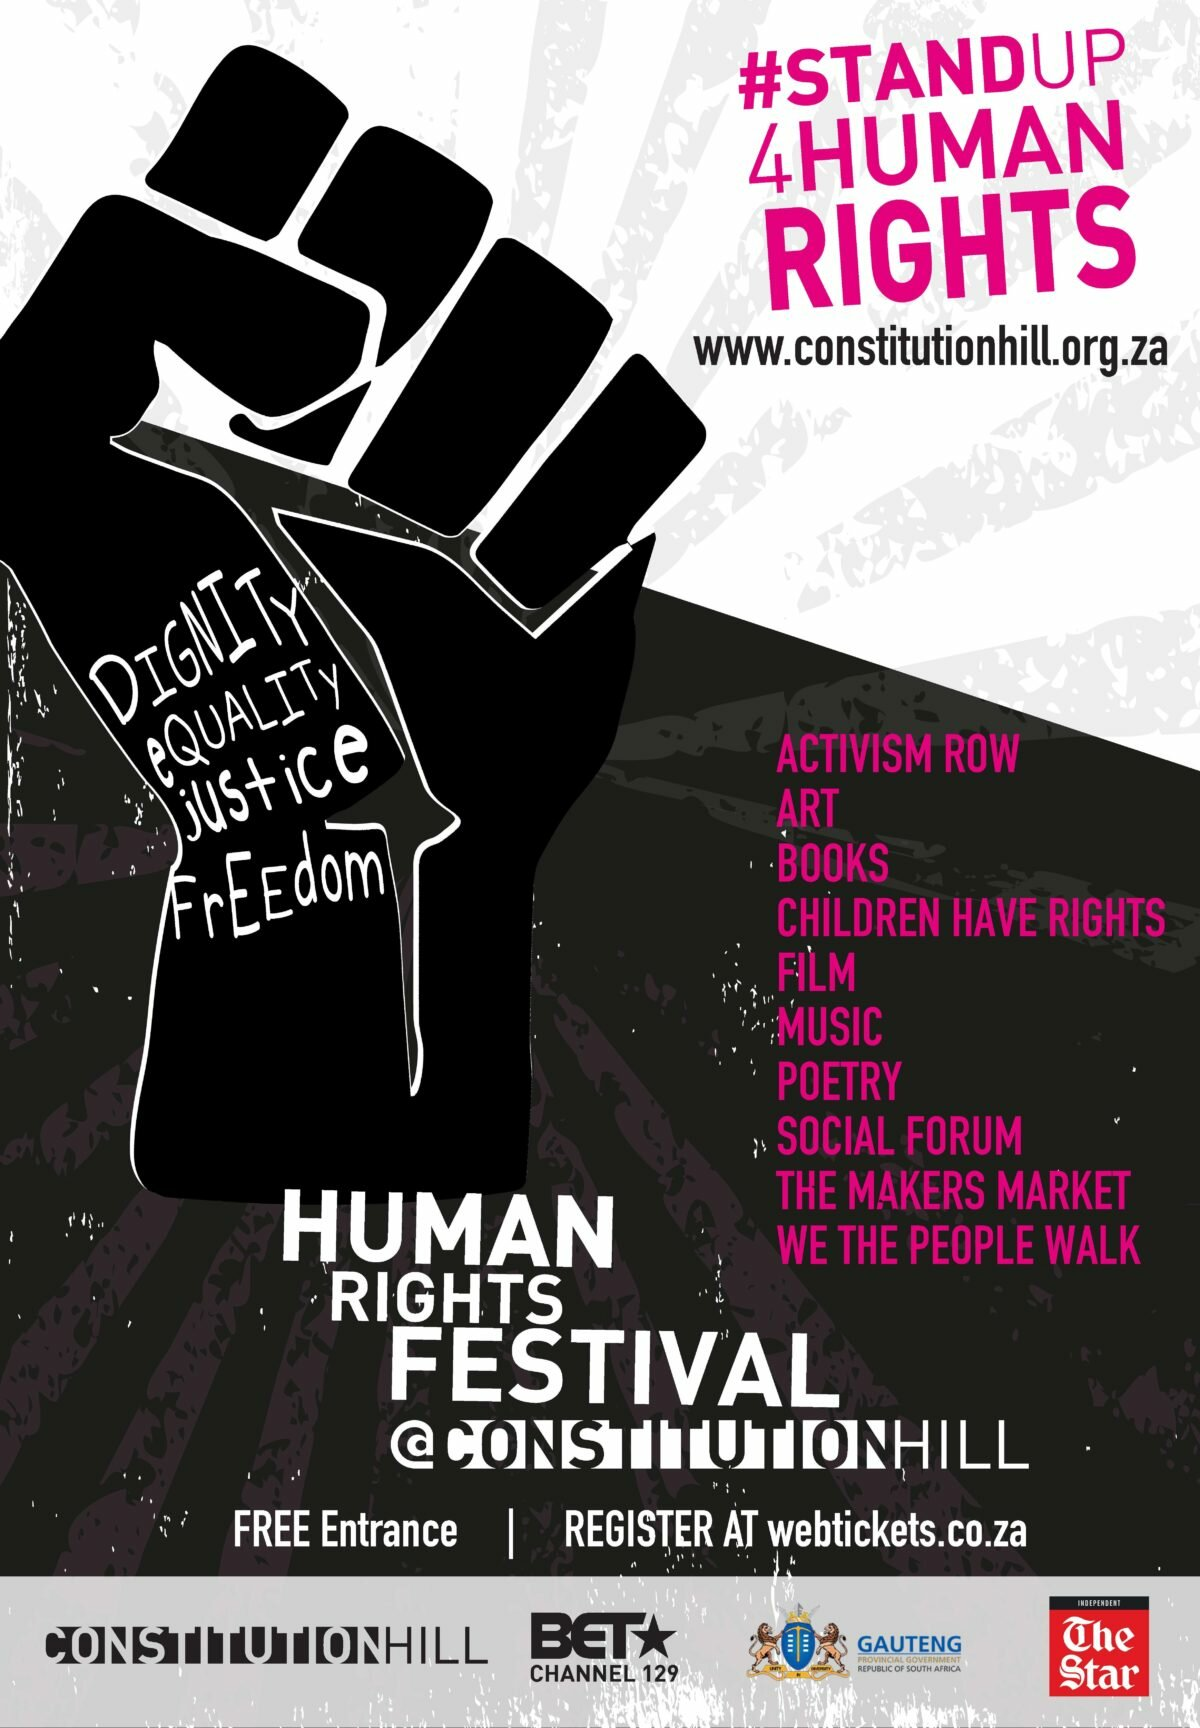 #StandUp4HumanRights - Constitution Hill Human Rights festival